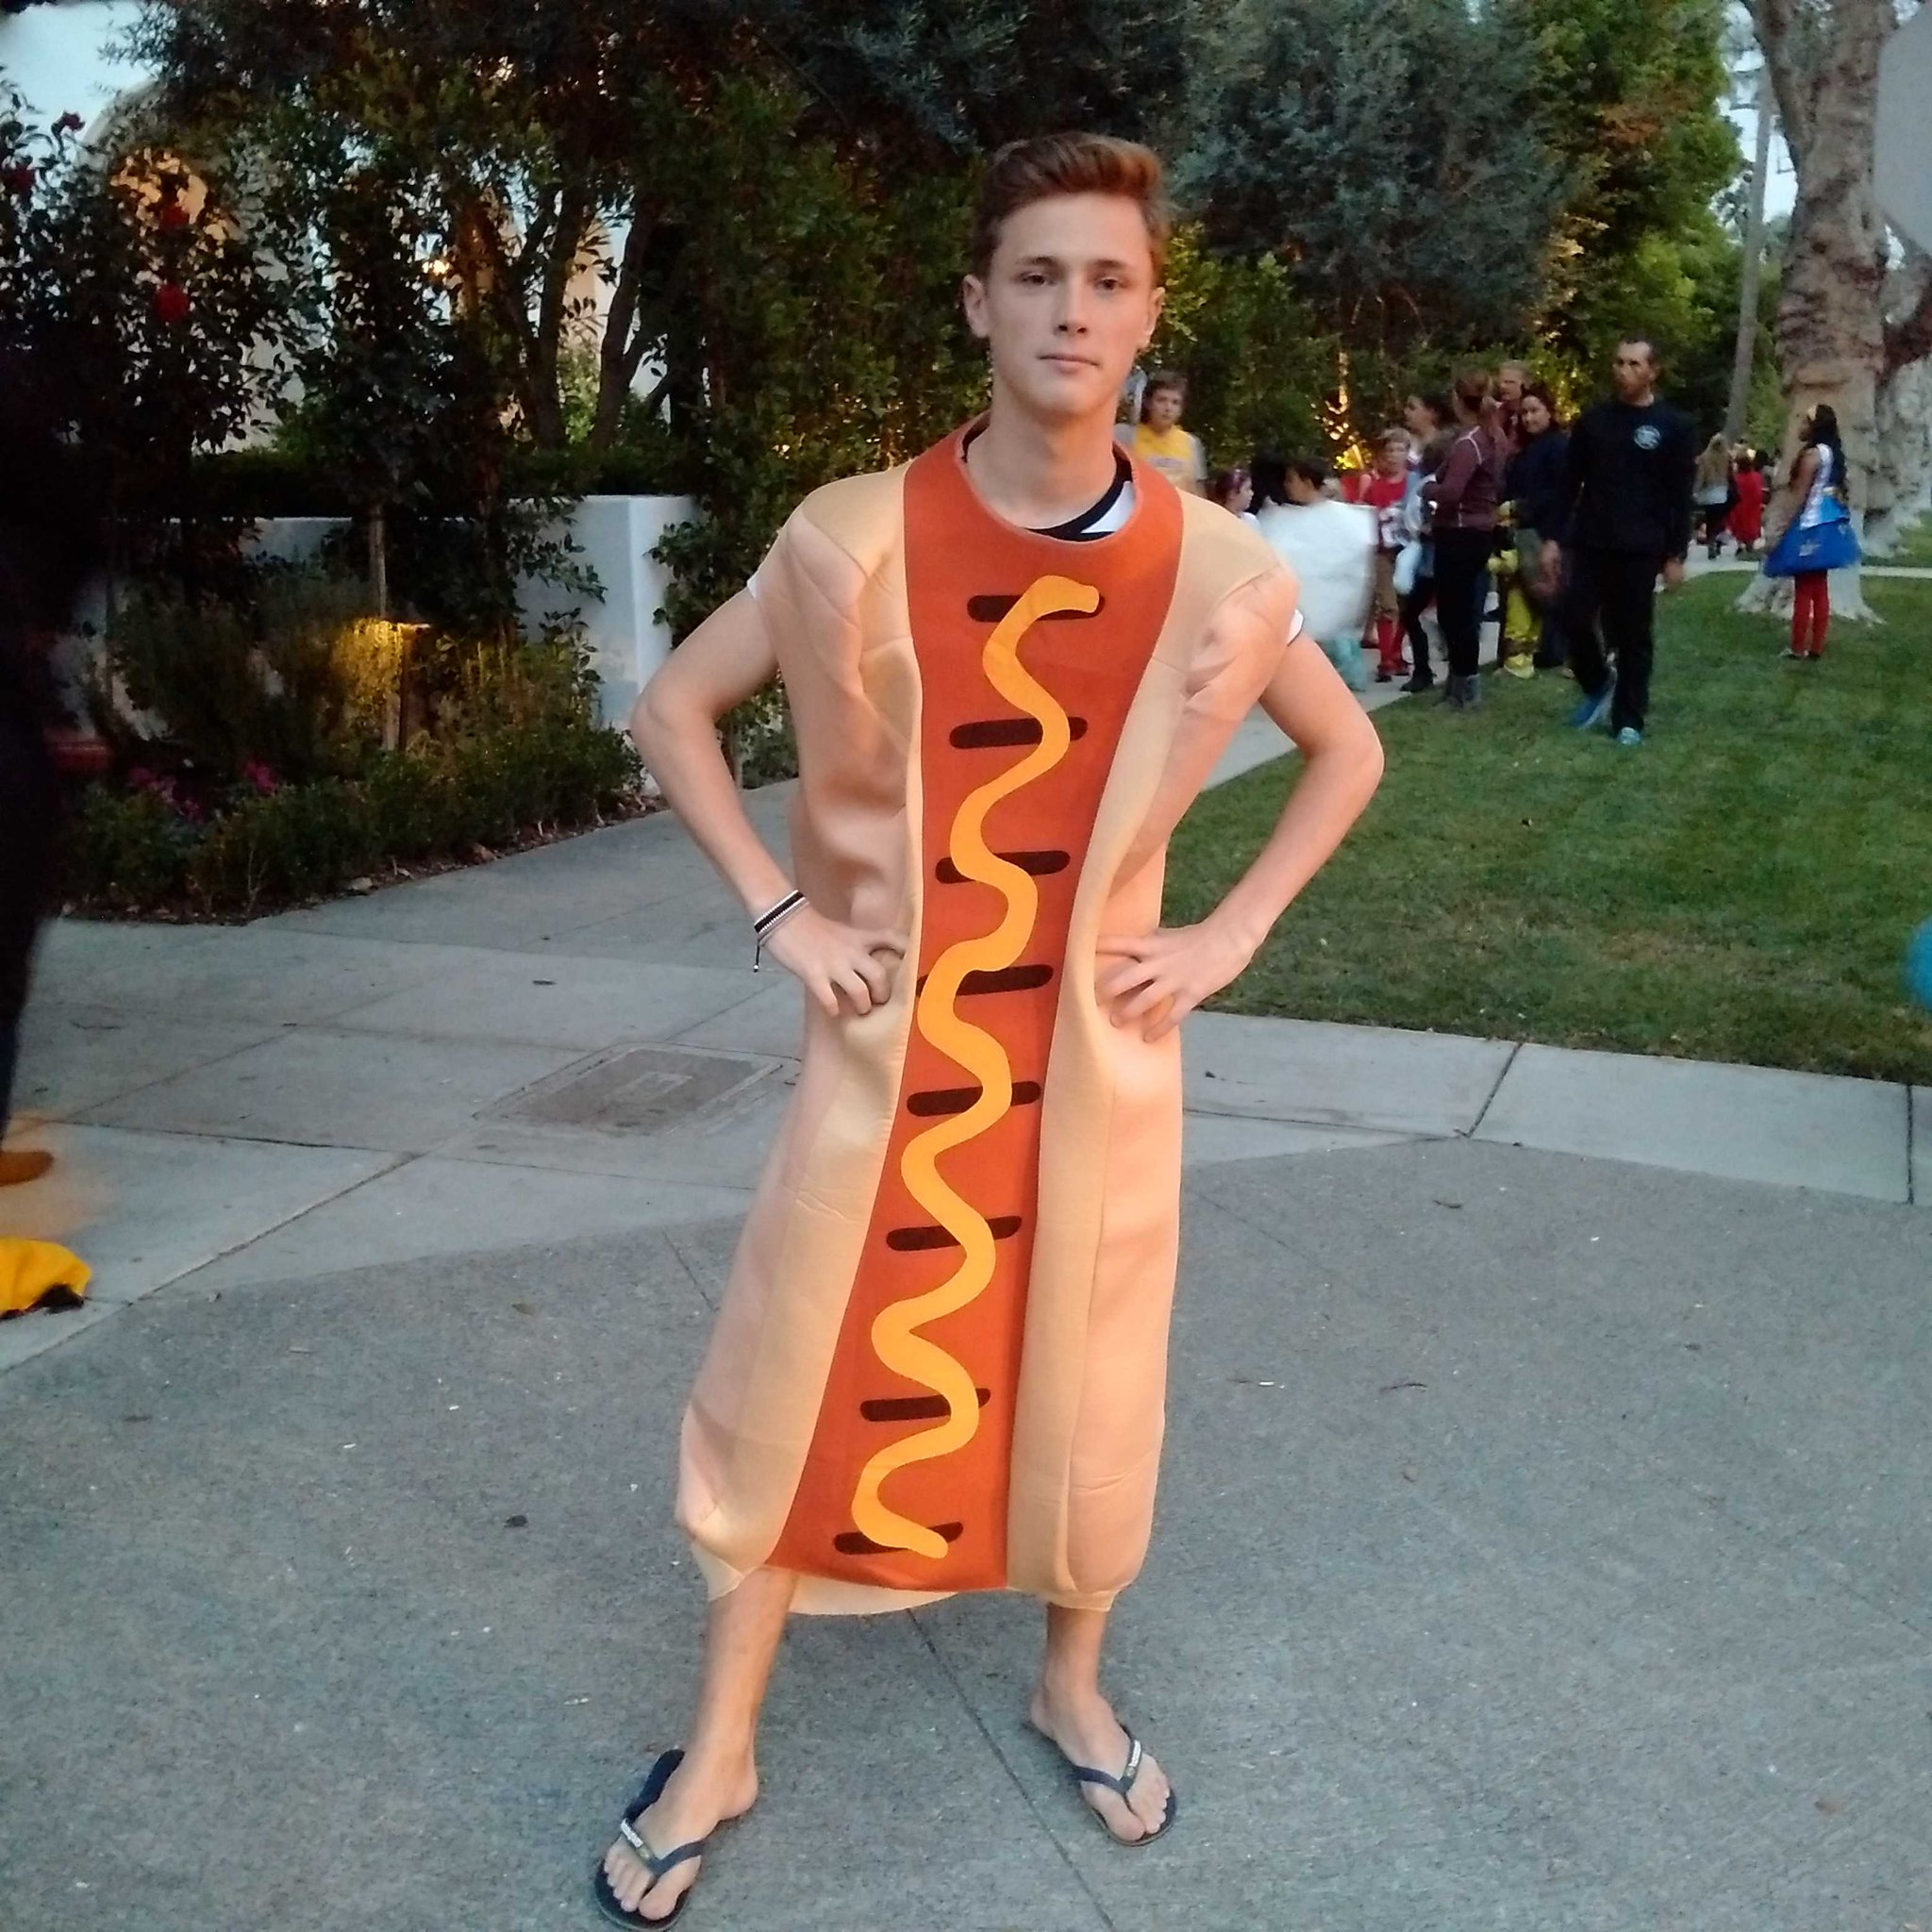 'Father, I want to be the most famous hot-dog in Hollywood.' Mission accomplished @StanleyMorgan18 . #halloween http://t.co/2InPMT4e1U